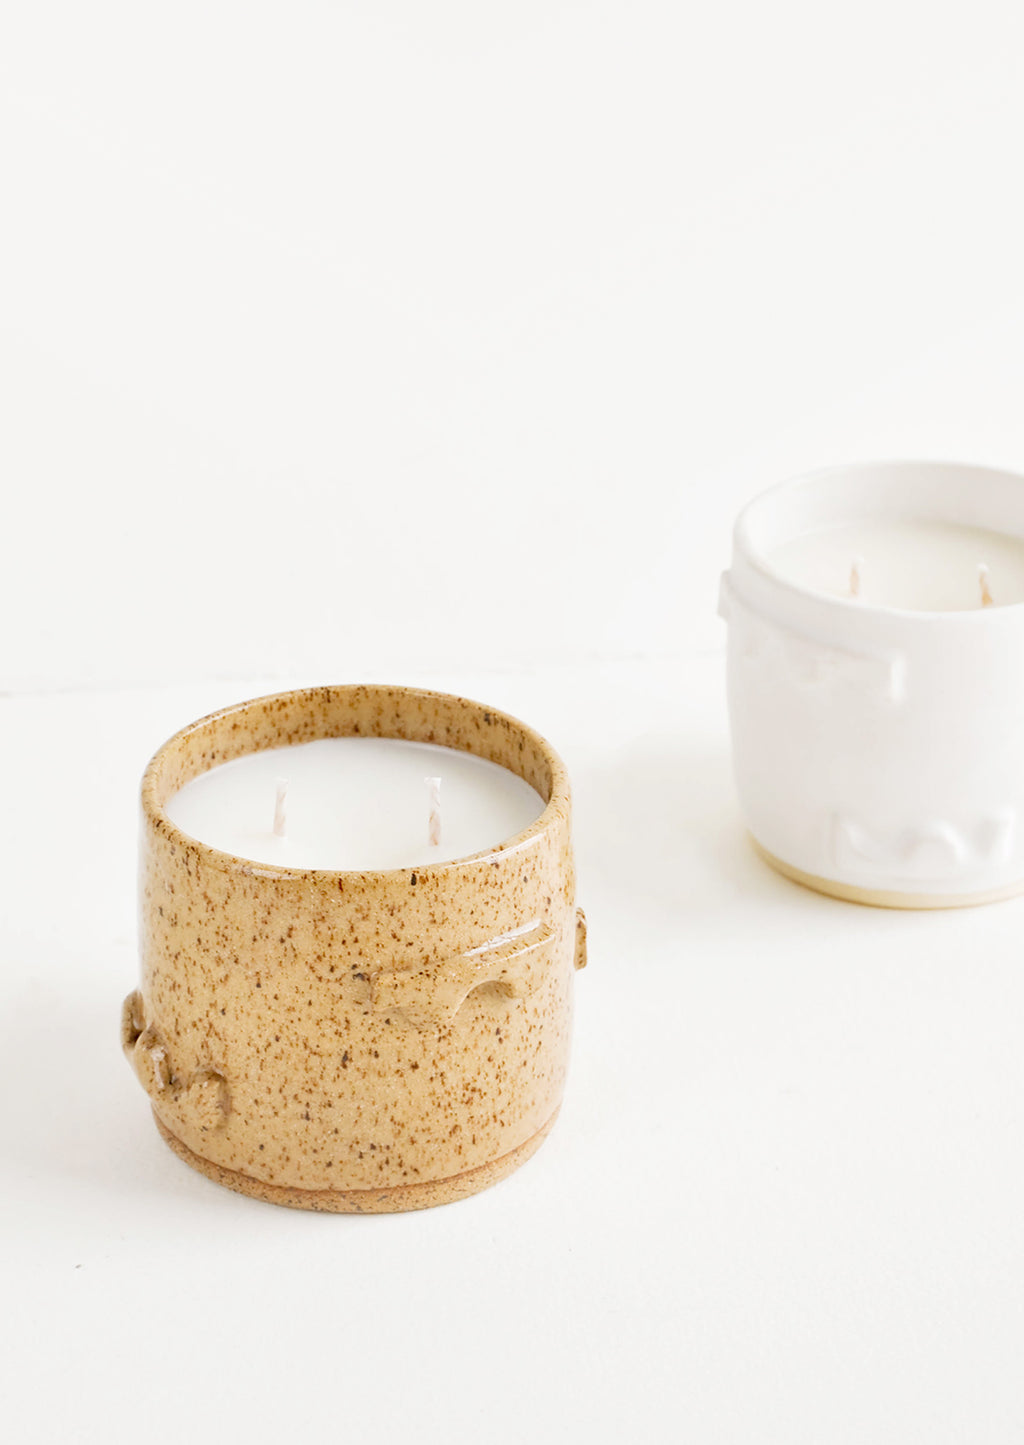 1: A candle in a light brown ceramic container with one in a white ceramic container just behind.